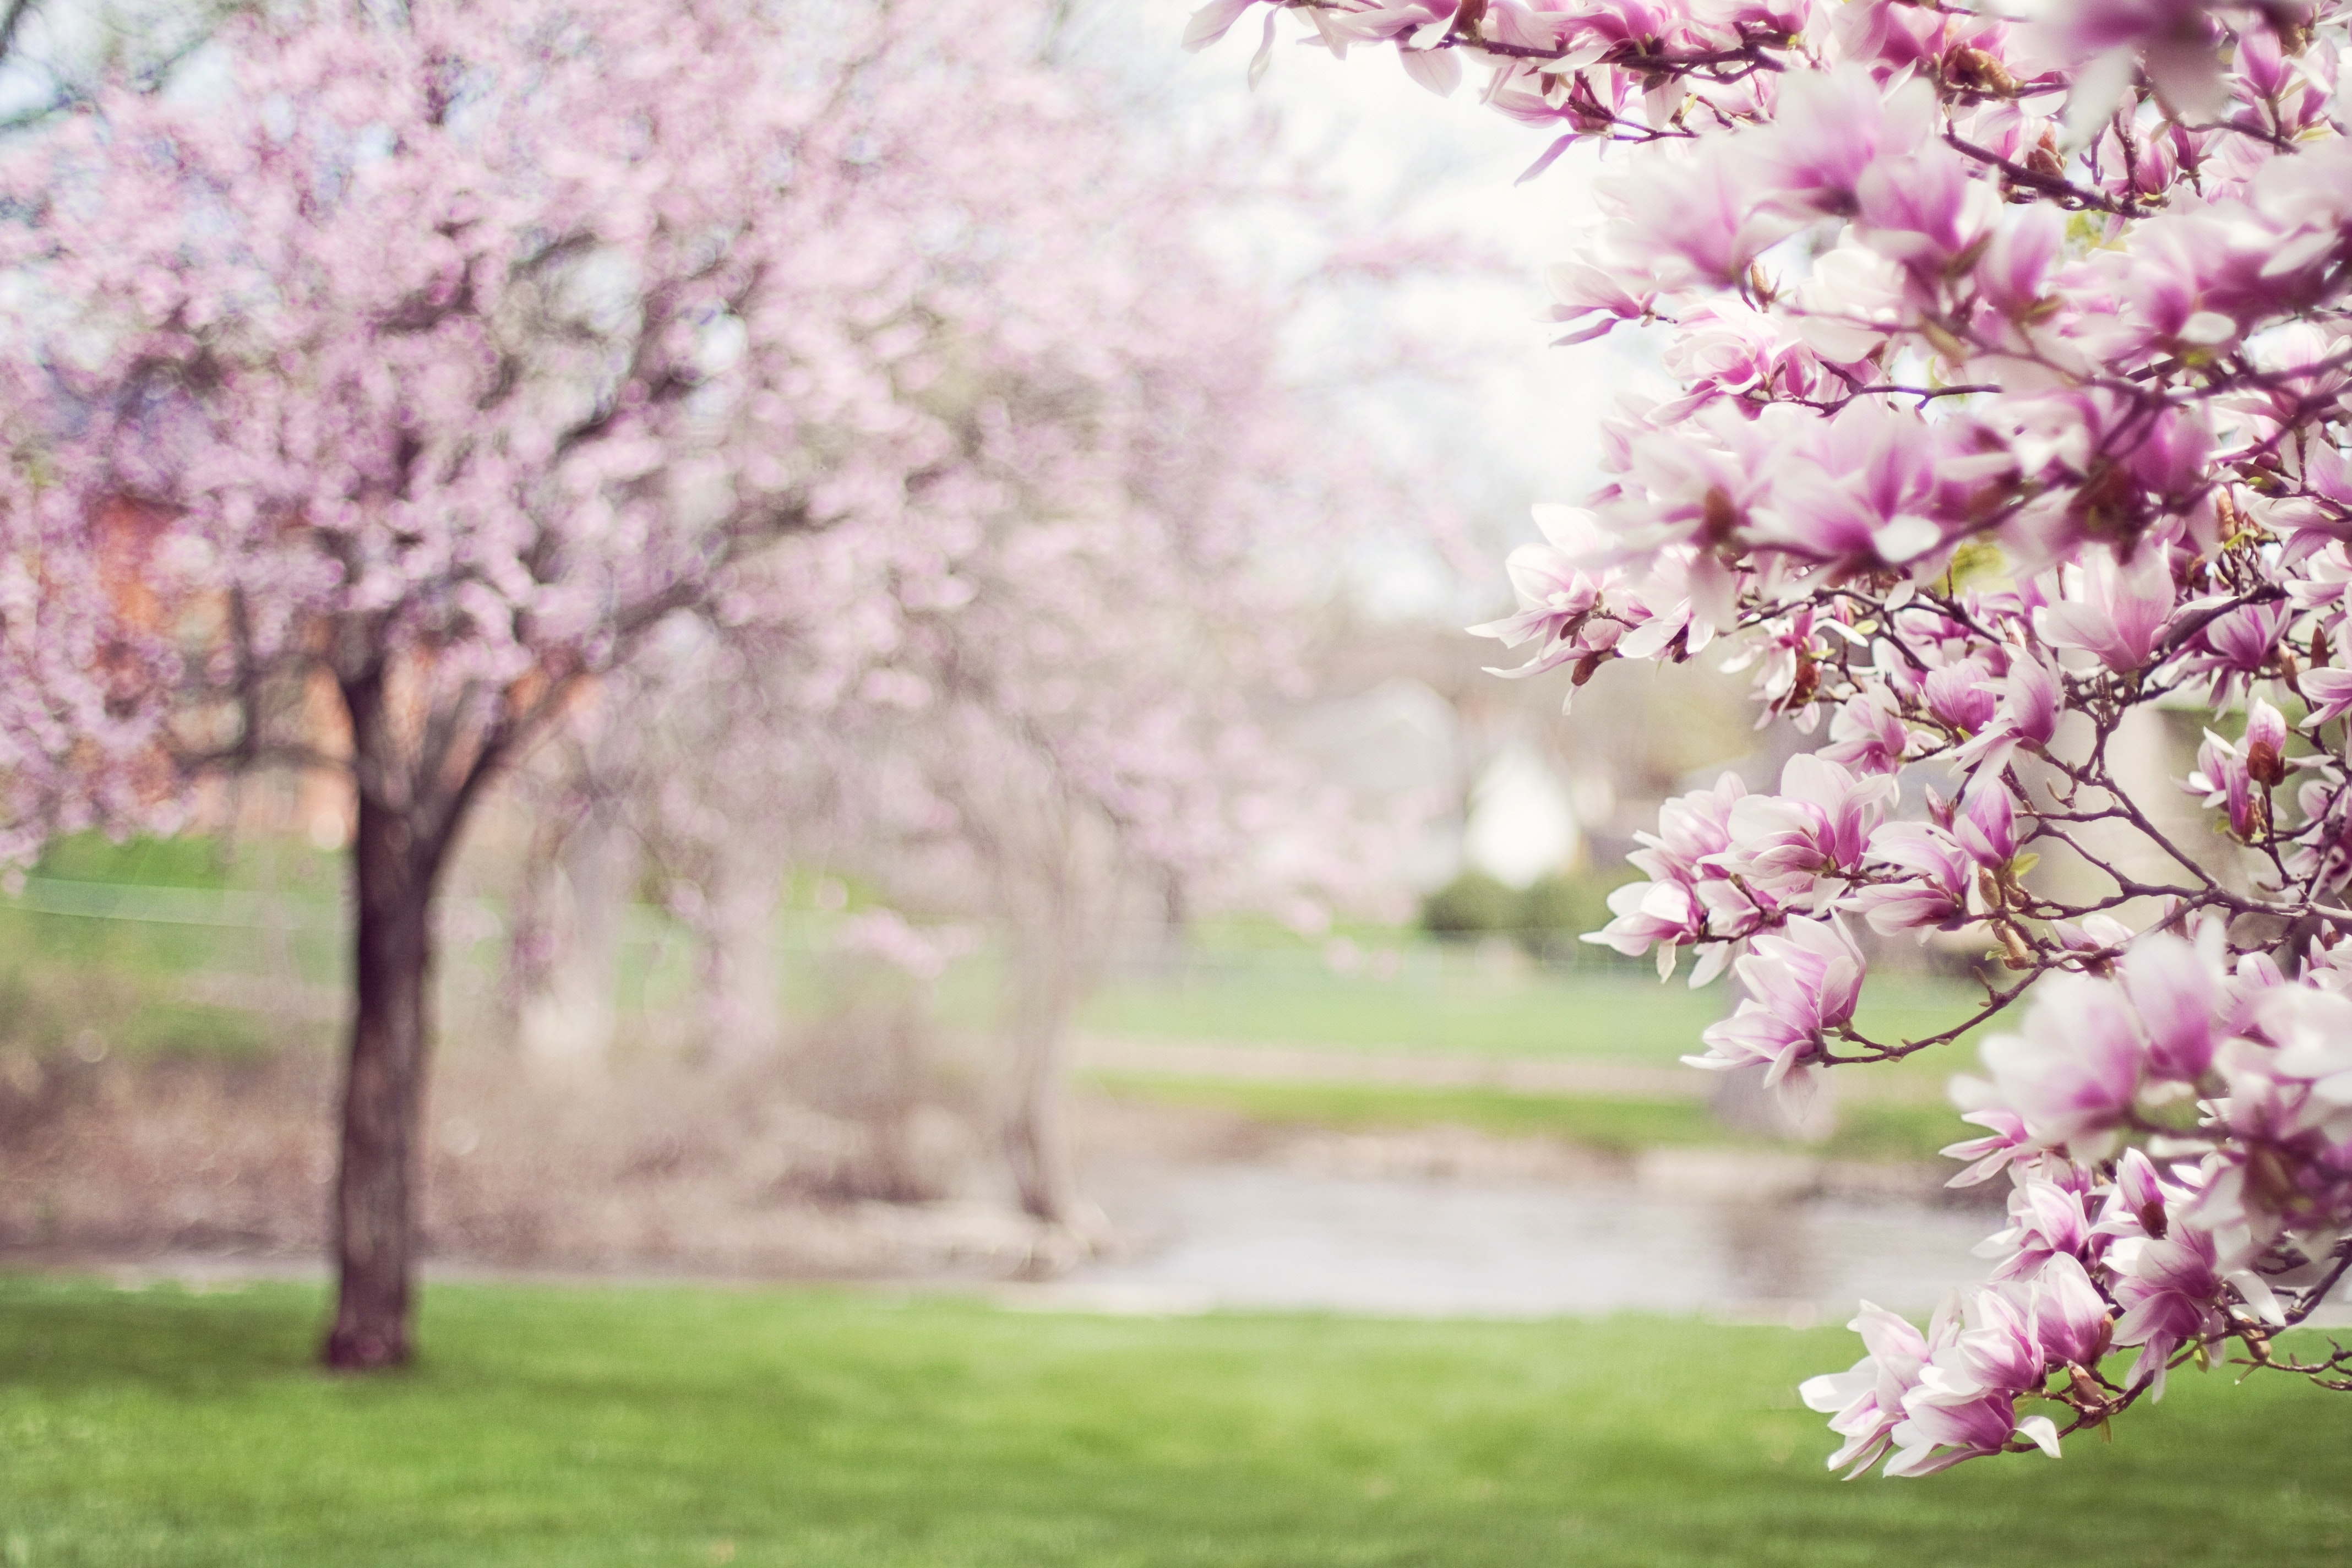 More Pink Cherry Blossom Tree